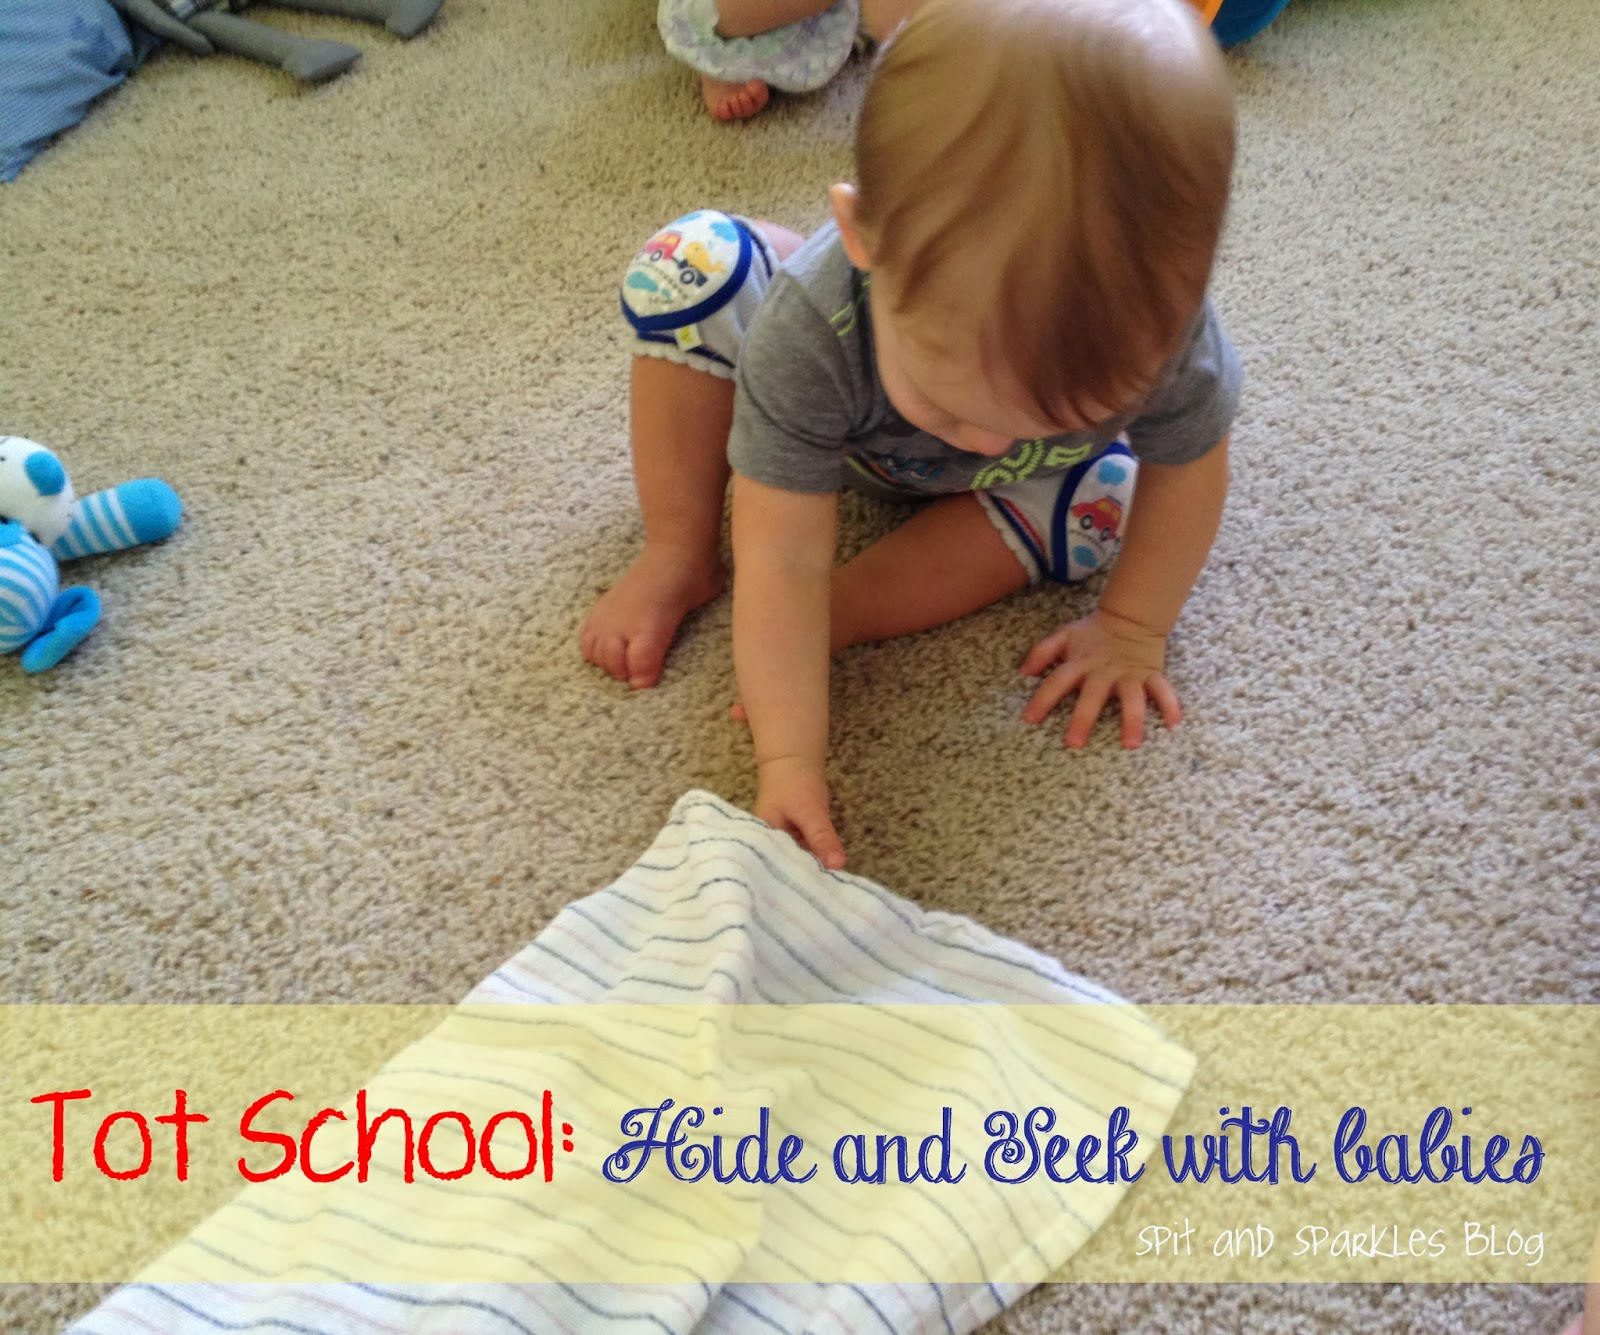 Playing hide and seek with babies teaches object permanence and more! #totschool #earlylearning #homeschool